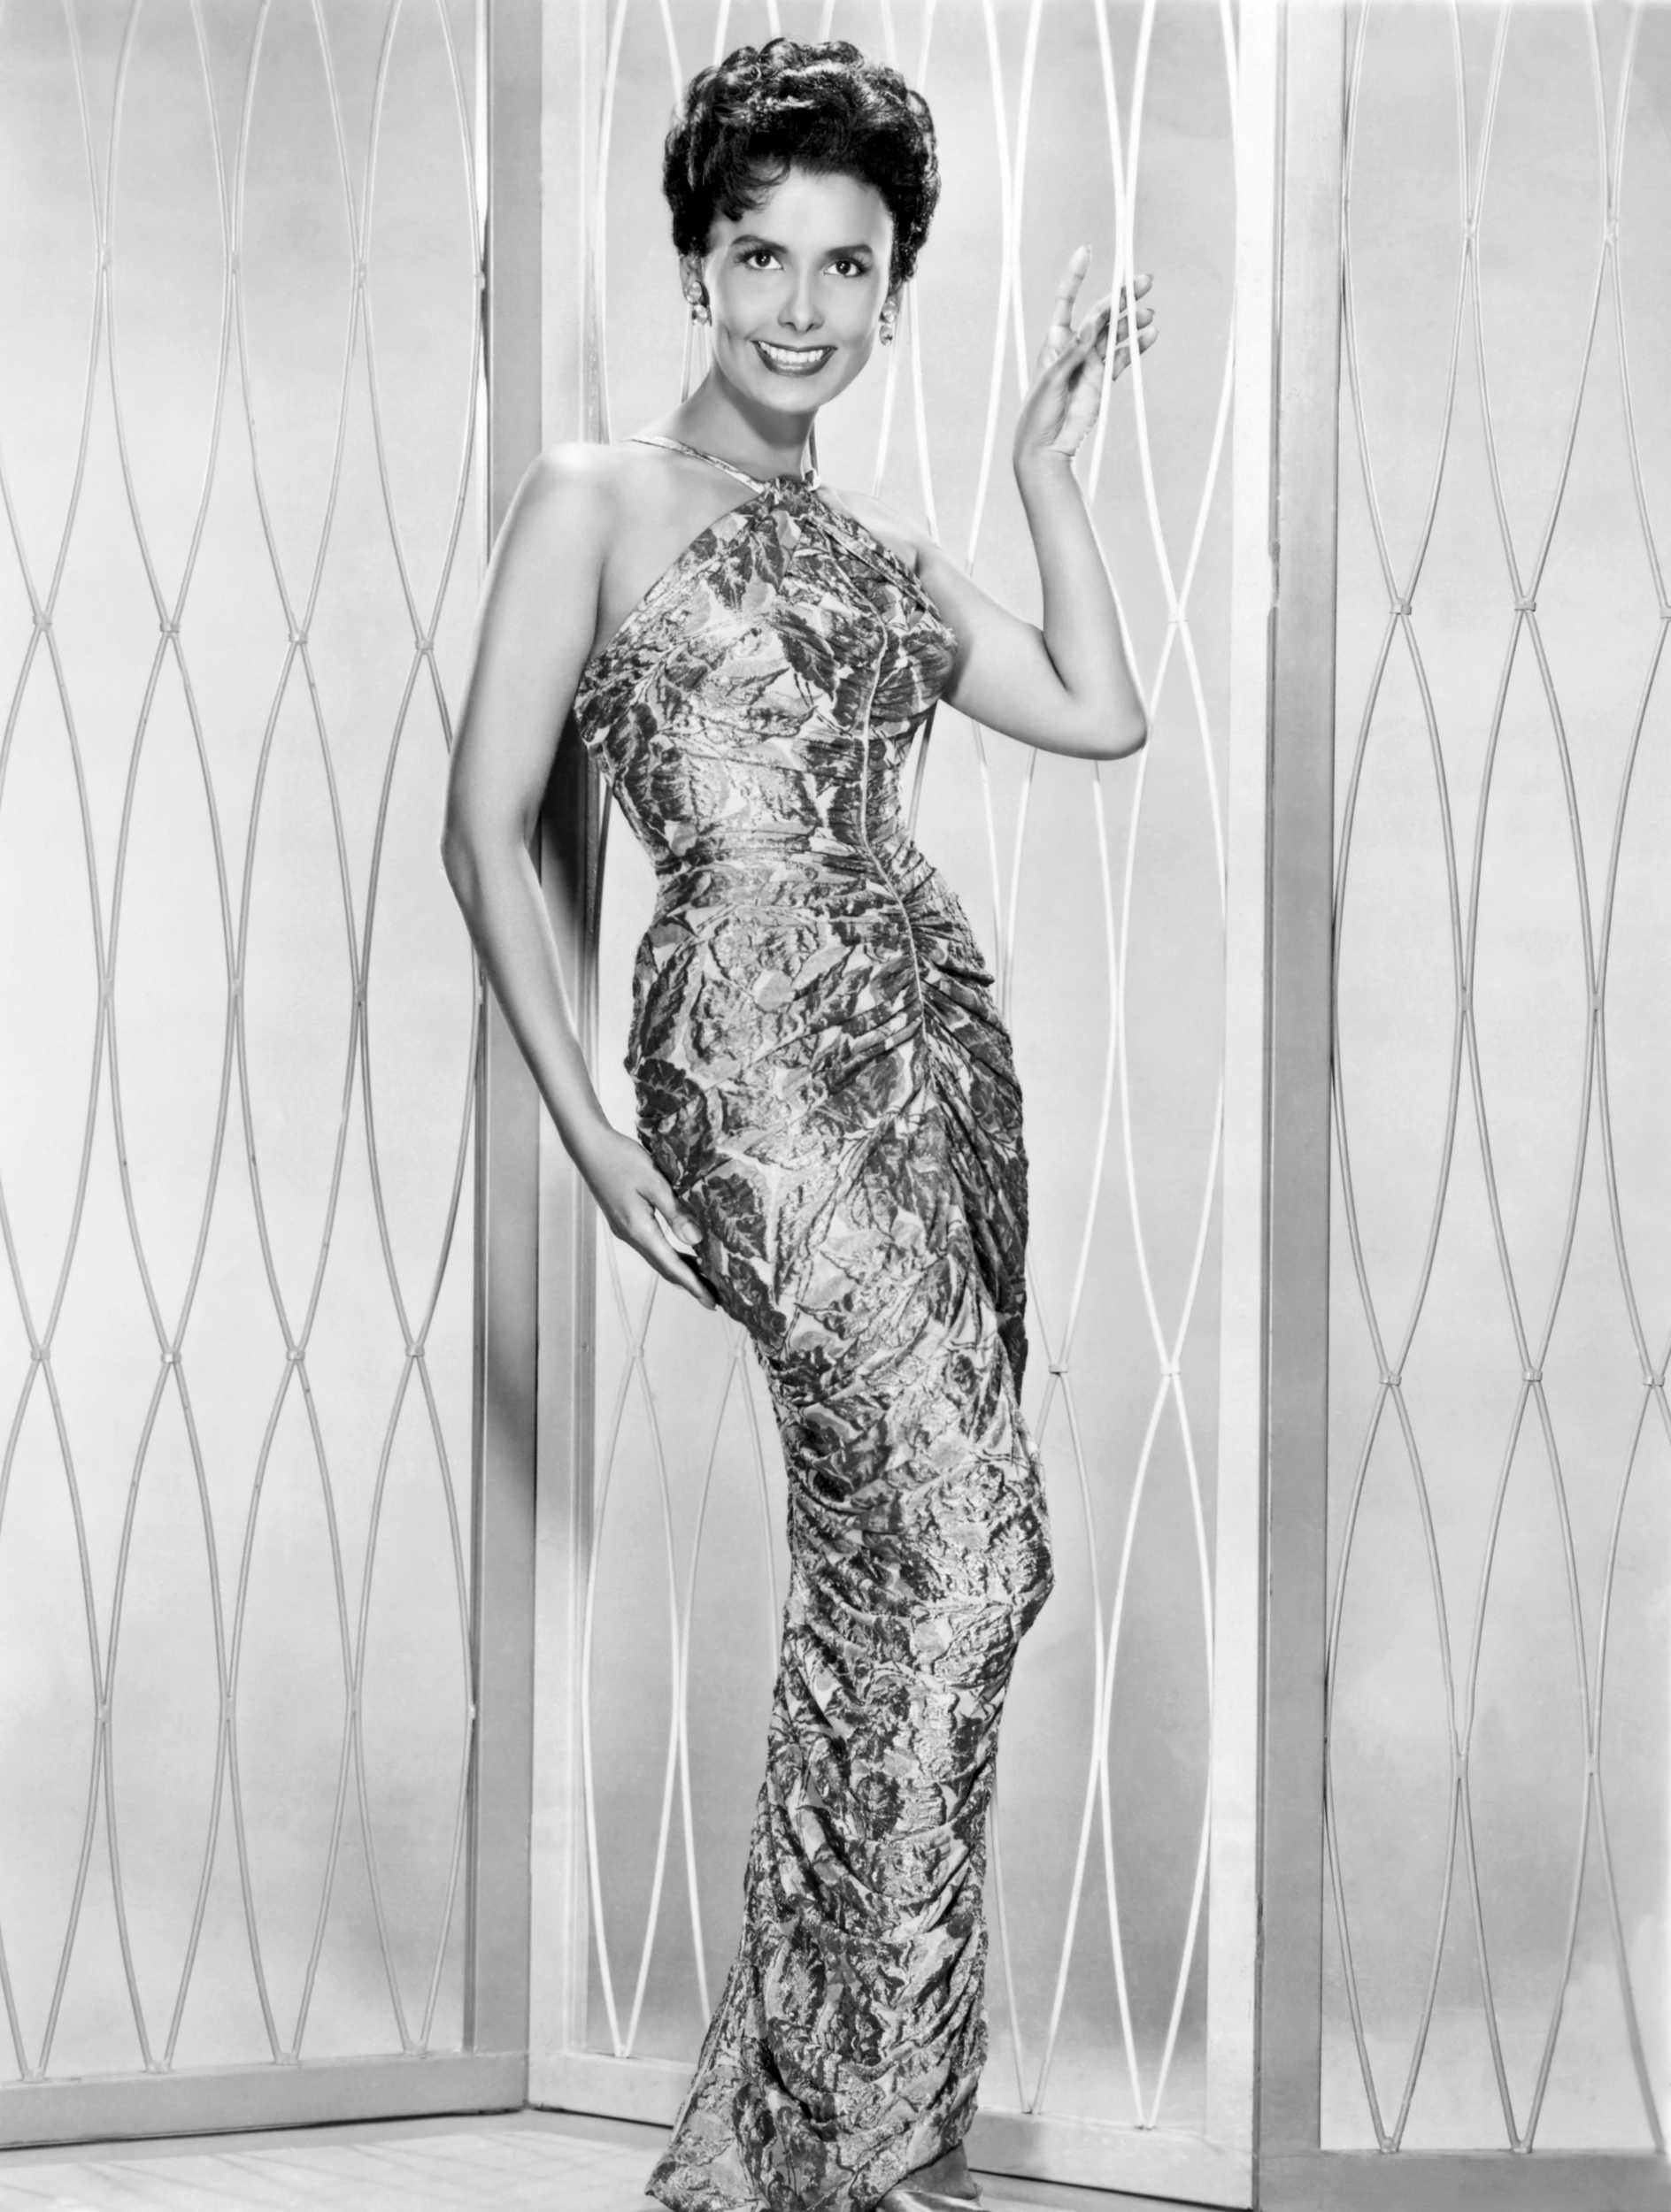 Singer Lena Horne started out her career in the Cotton Club in 1930s, beginning as chorus line singer and eventually becoming a headlining star in her own right.